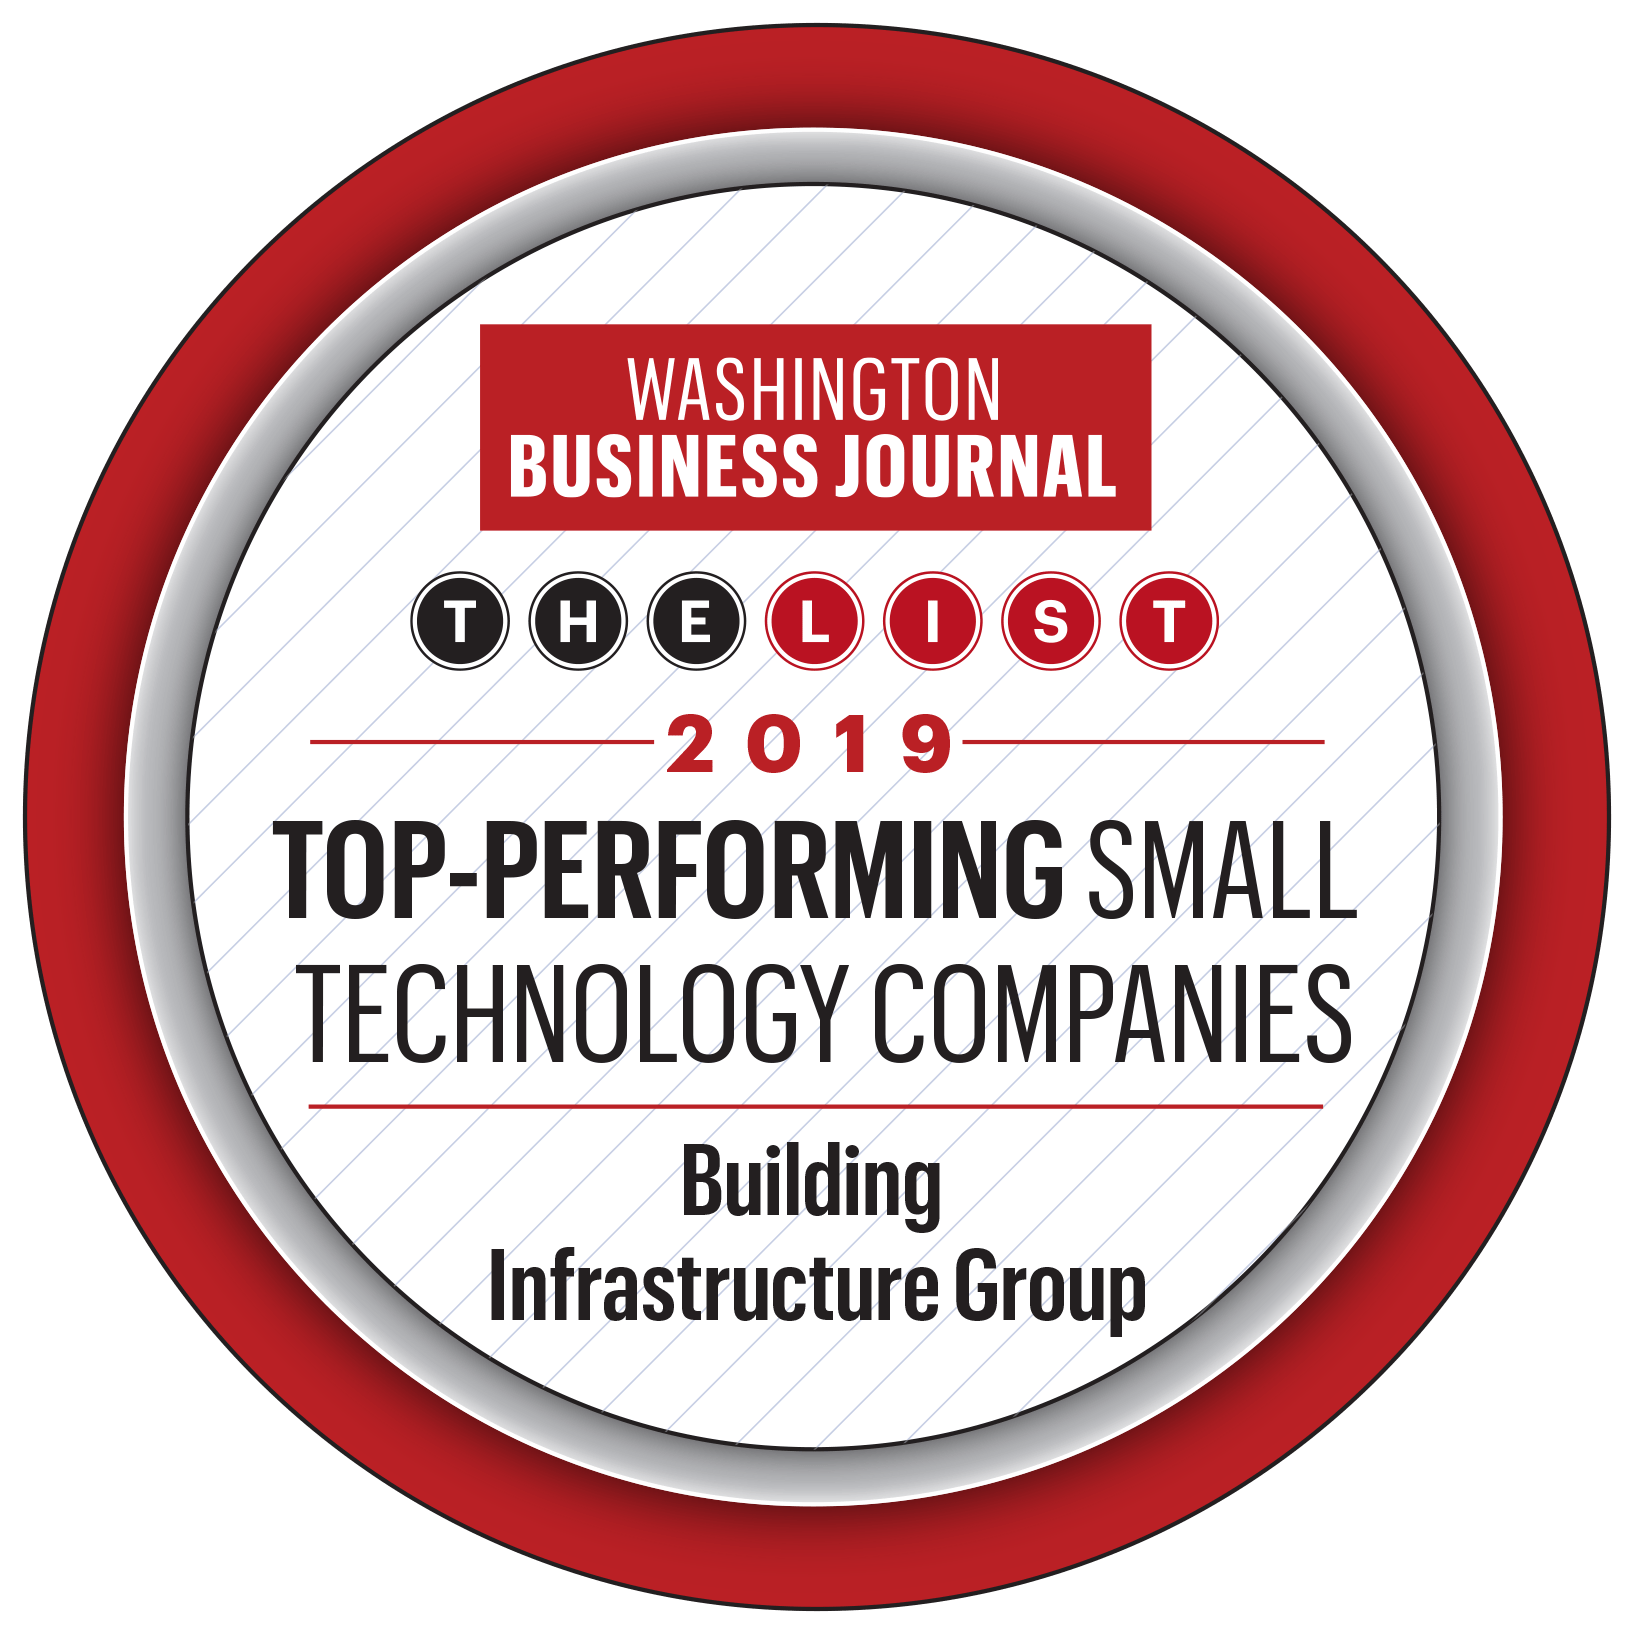 Top-Performing Small Technology Companies - 2019